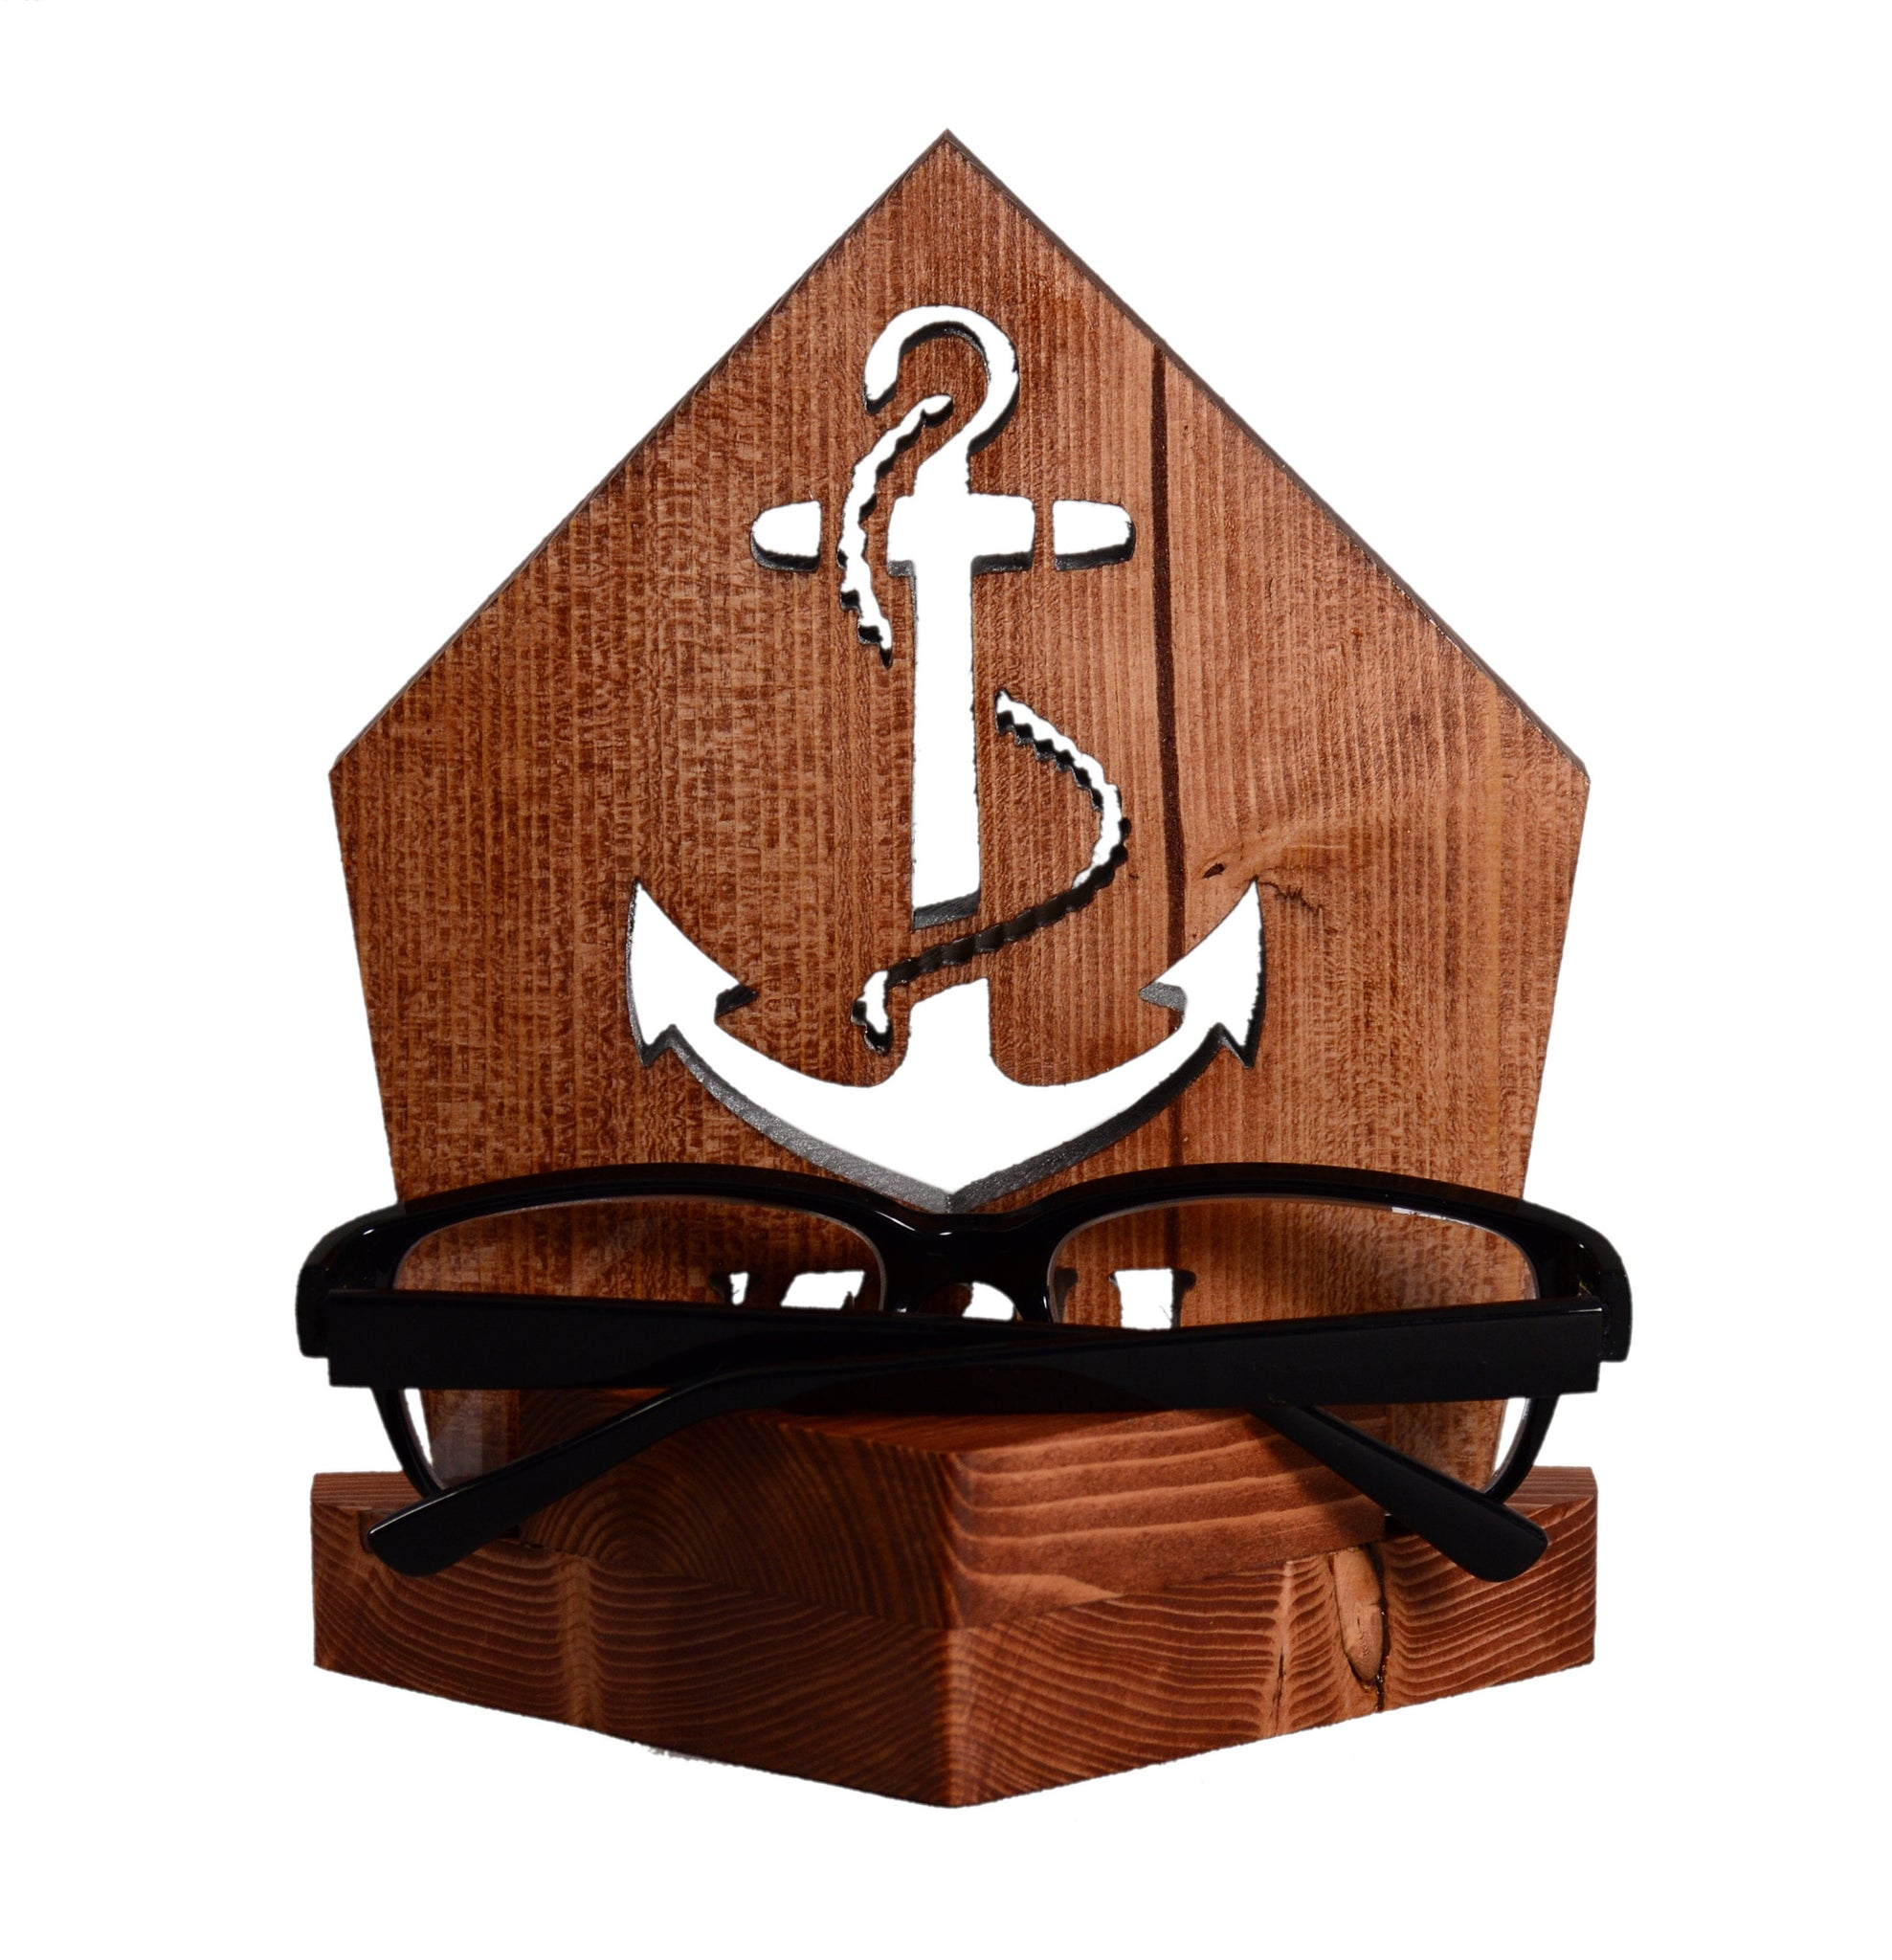 NAVY Anchor Insignia Desk Set • Personalized Gift for Veteran Sailor